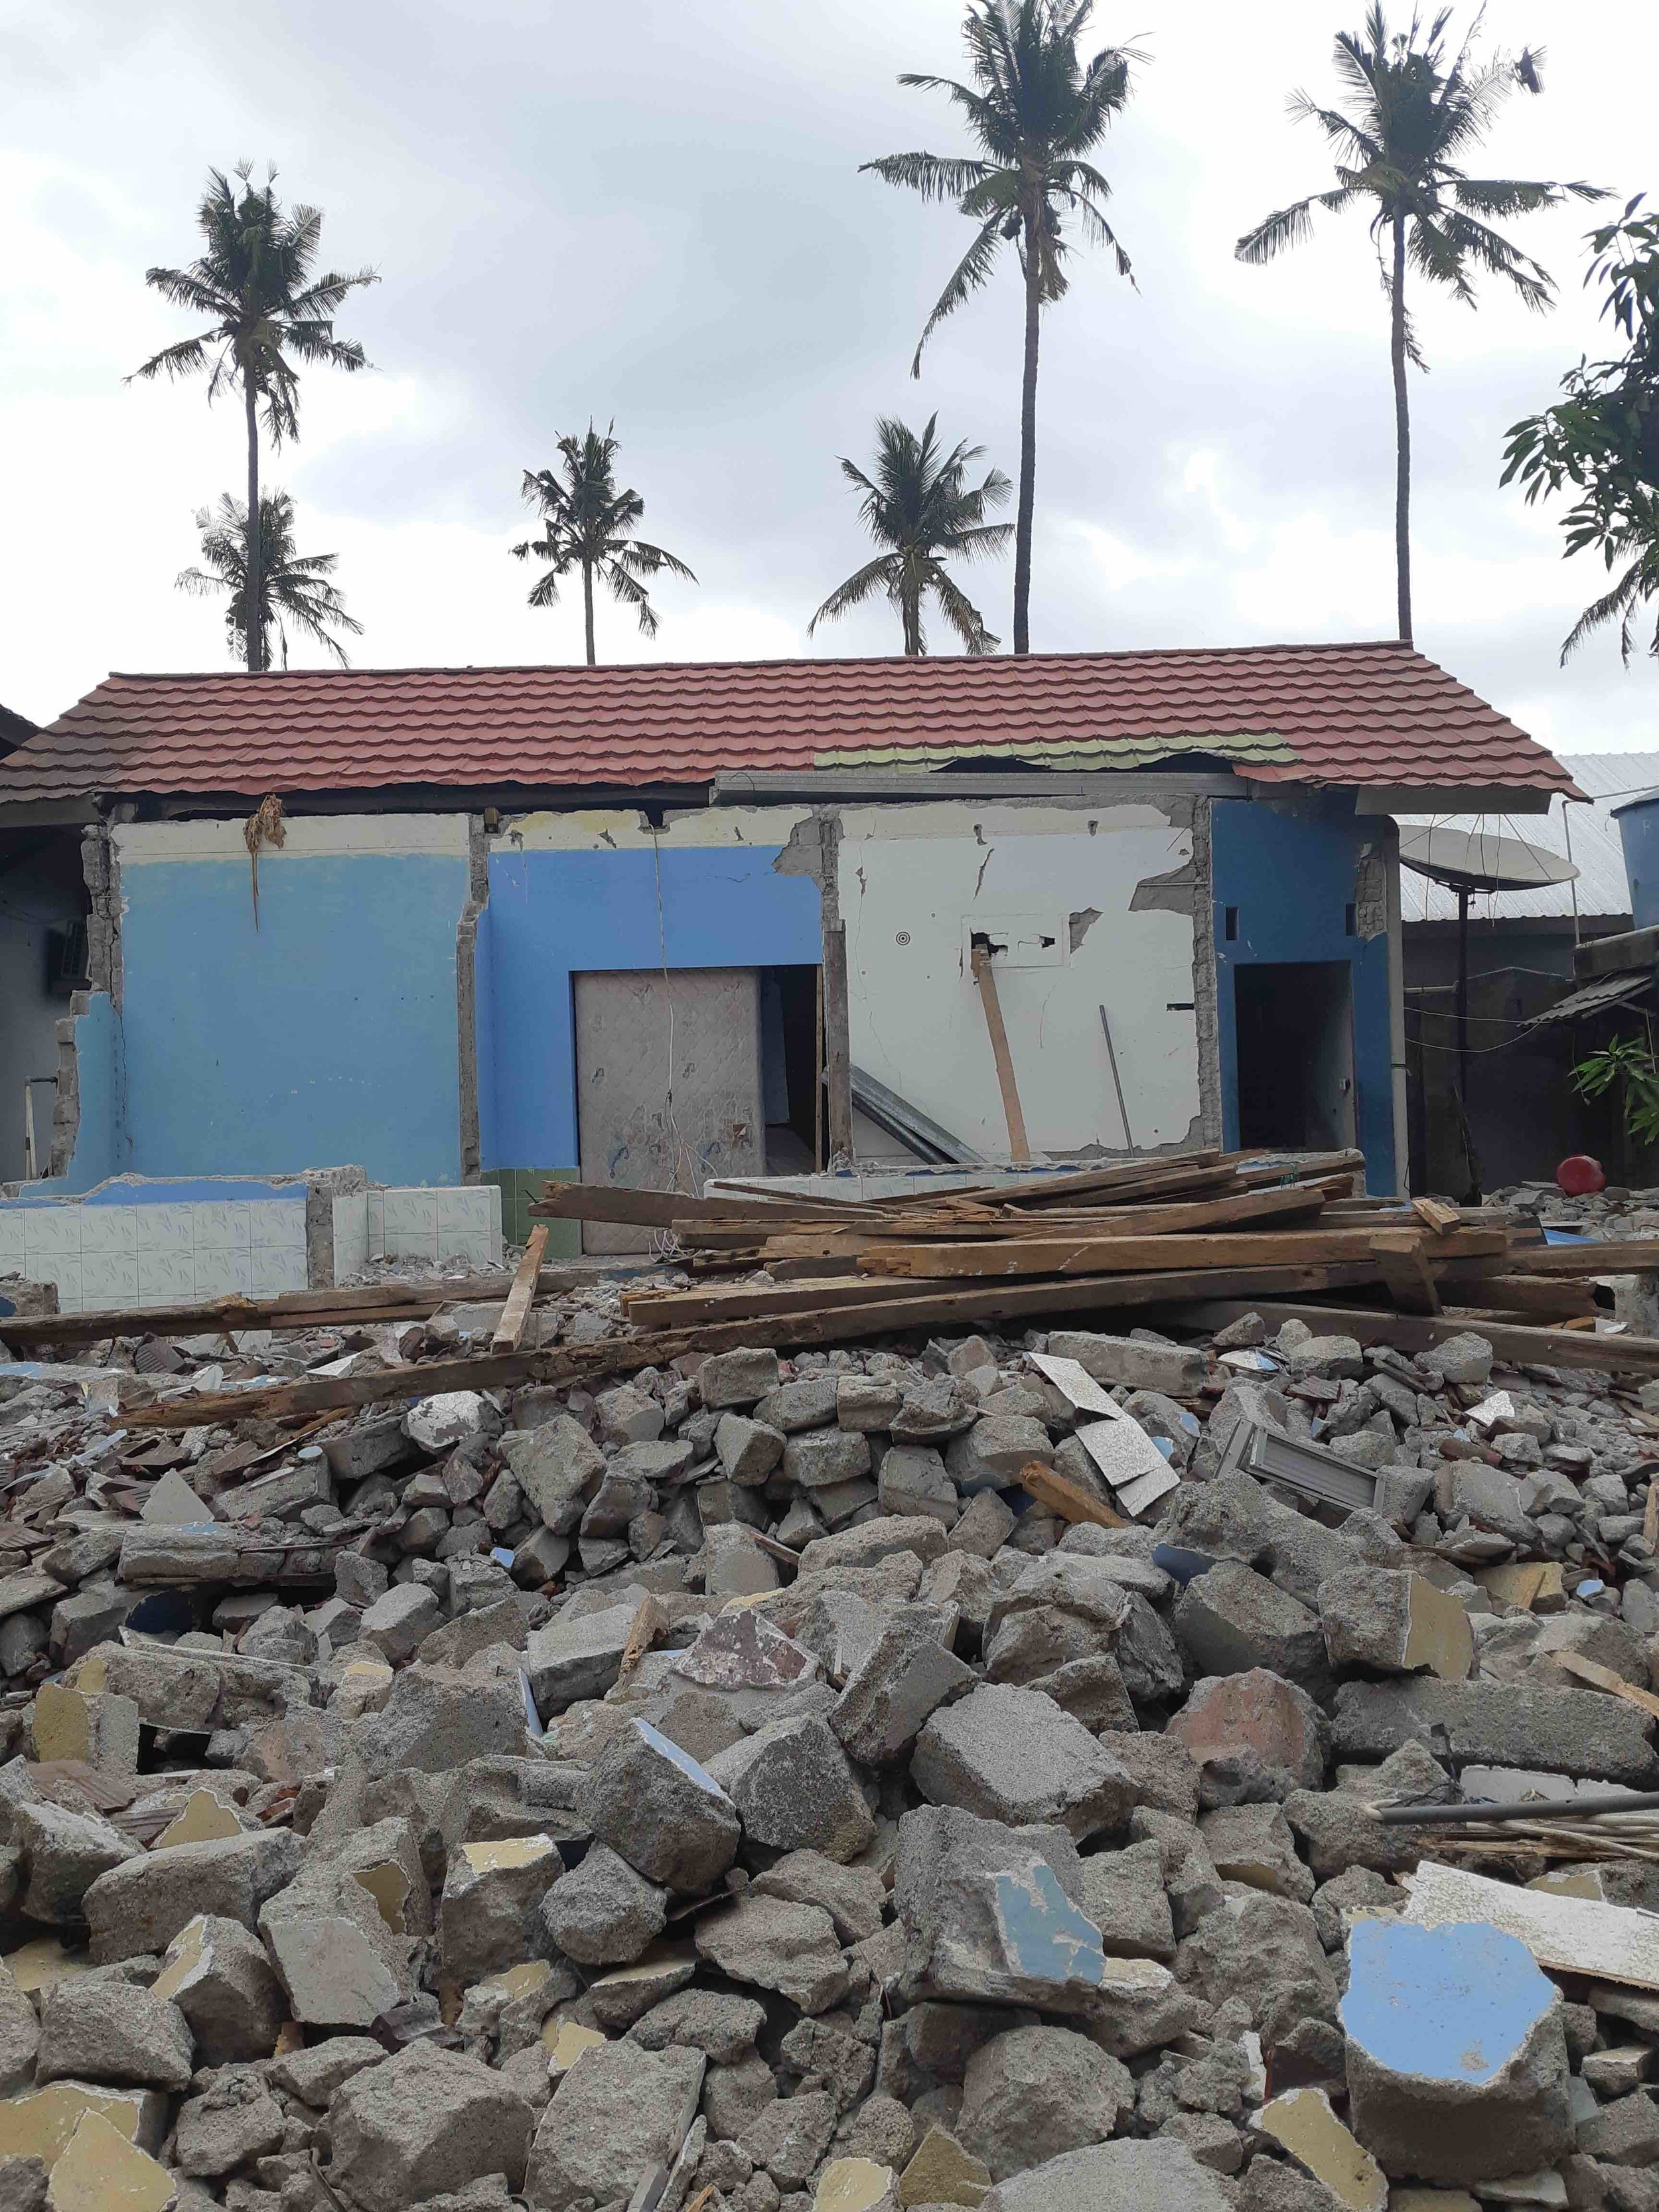 James Buchanan | Rubble remains of locals house